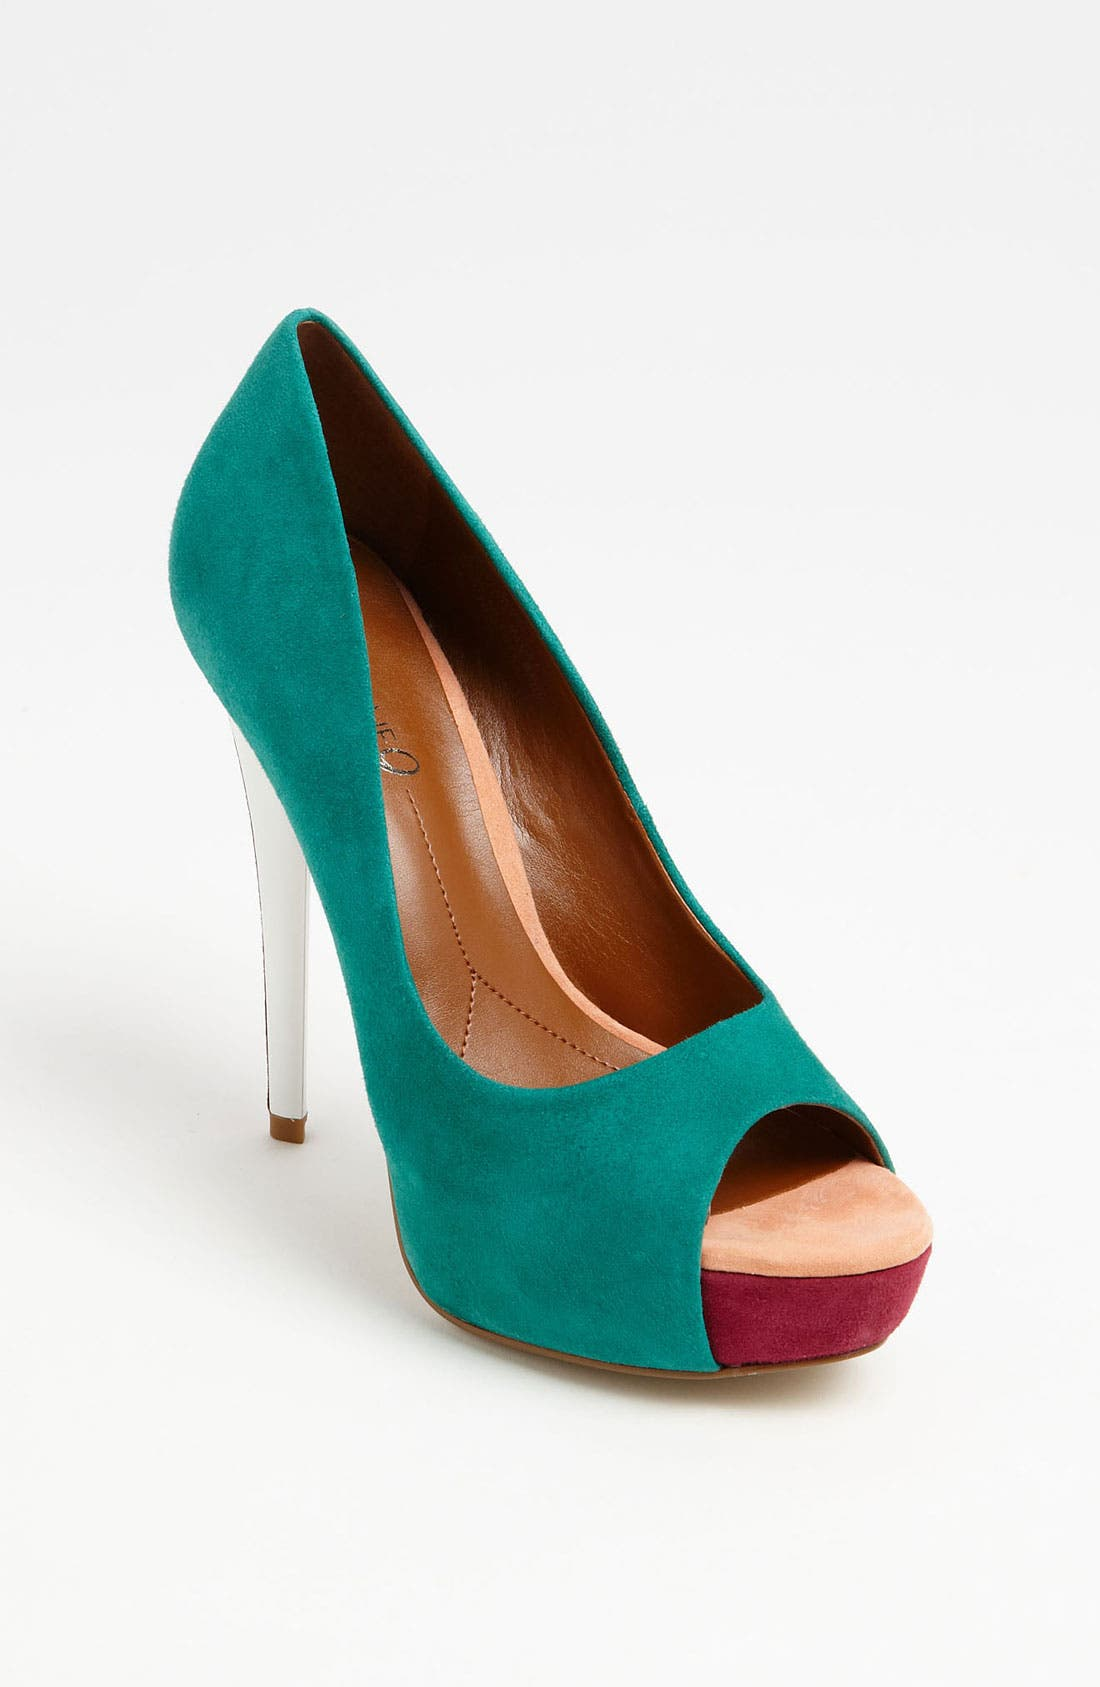 Main Image - Boutique 9 'Claudius' Pump